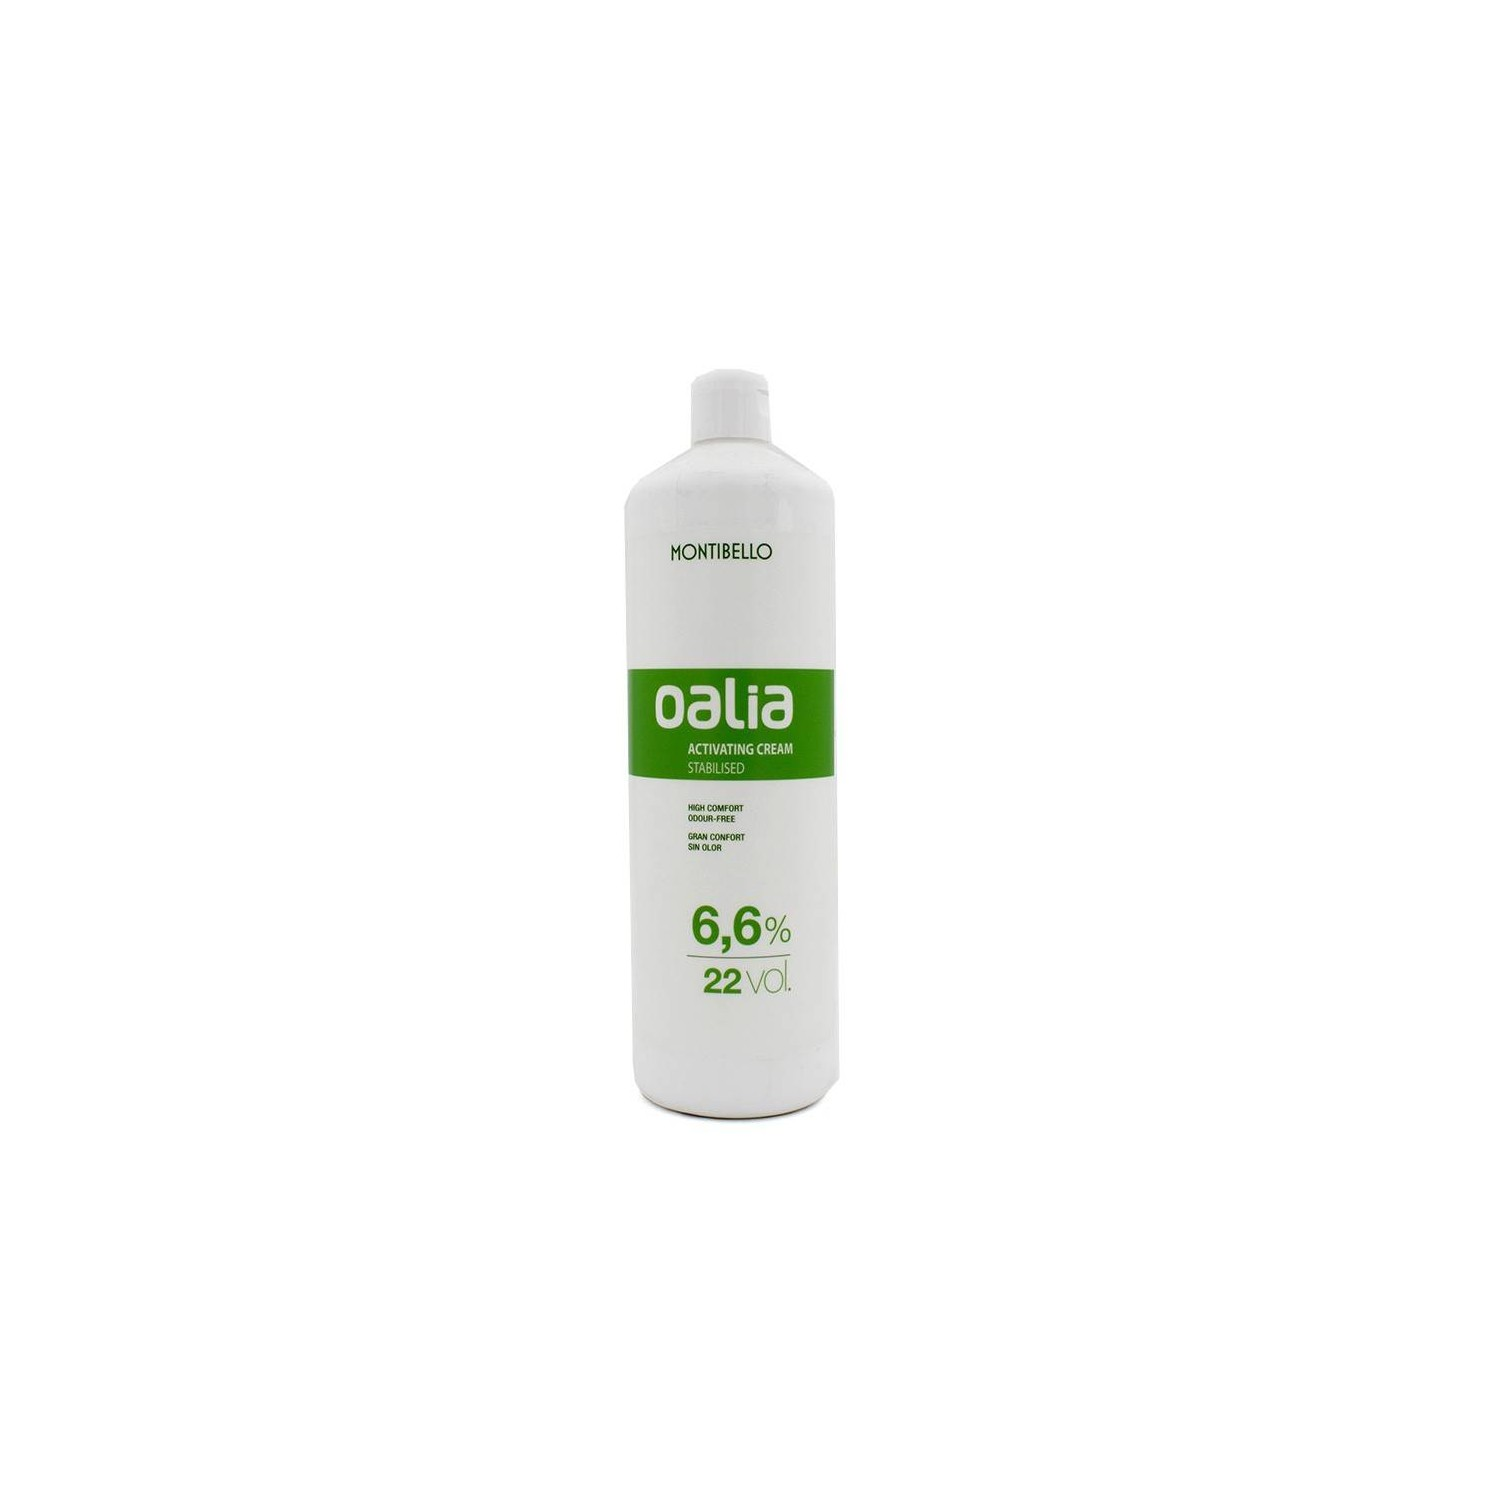 Montibello Oalia Act Cream 22 Vol 6.6% 1000 Ml